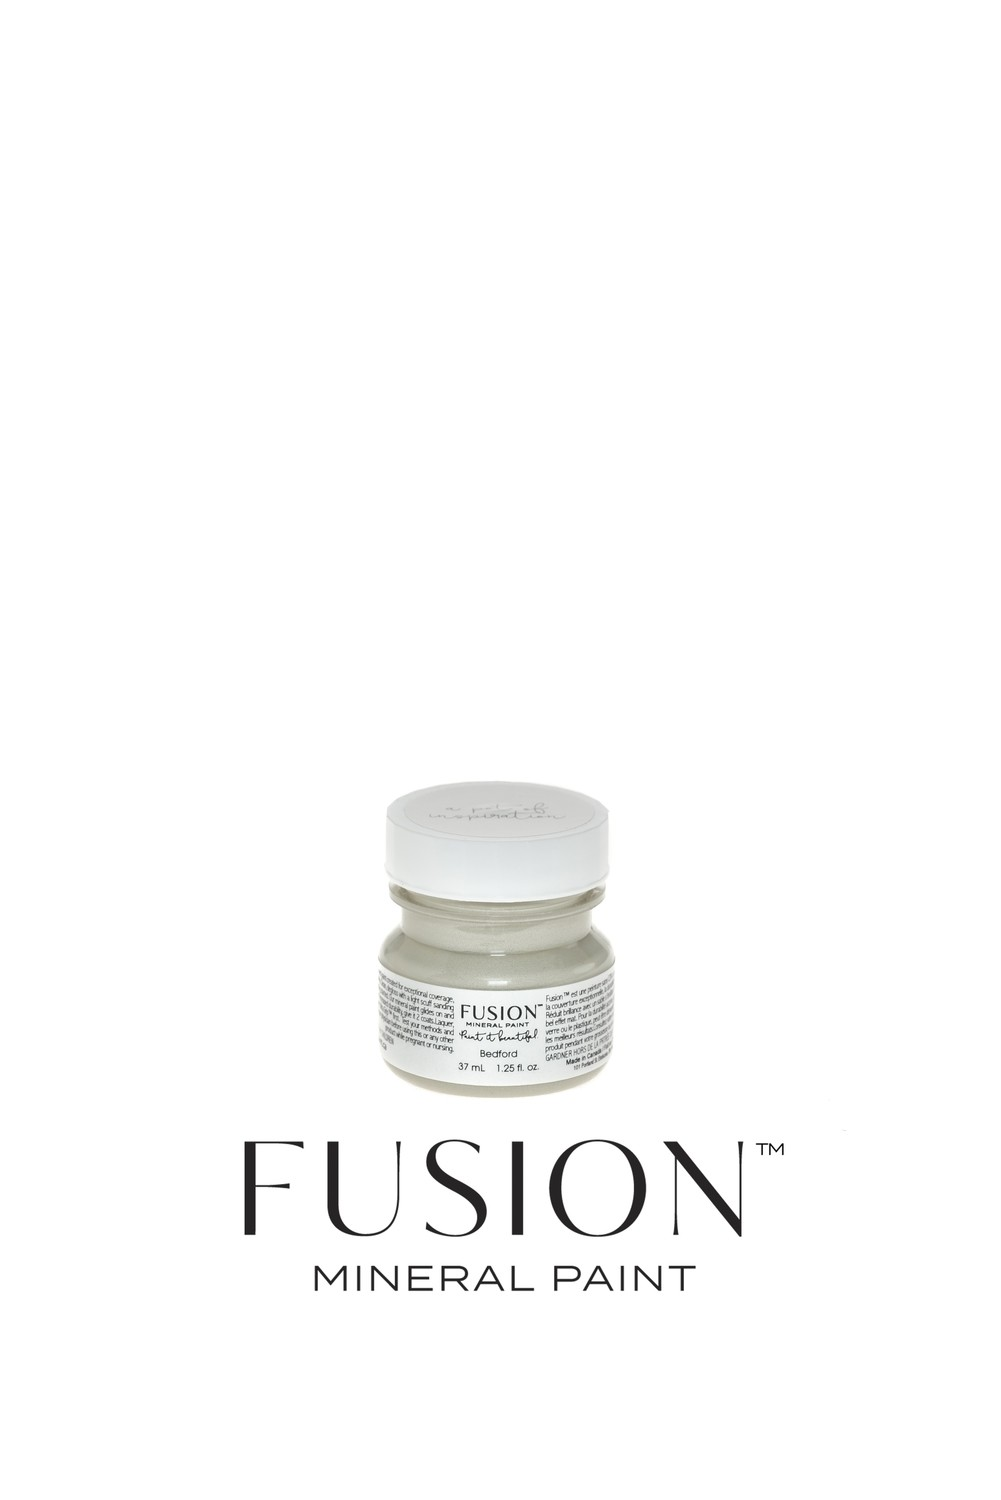 Bedford Fusion Mineral Paint Tester